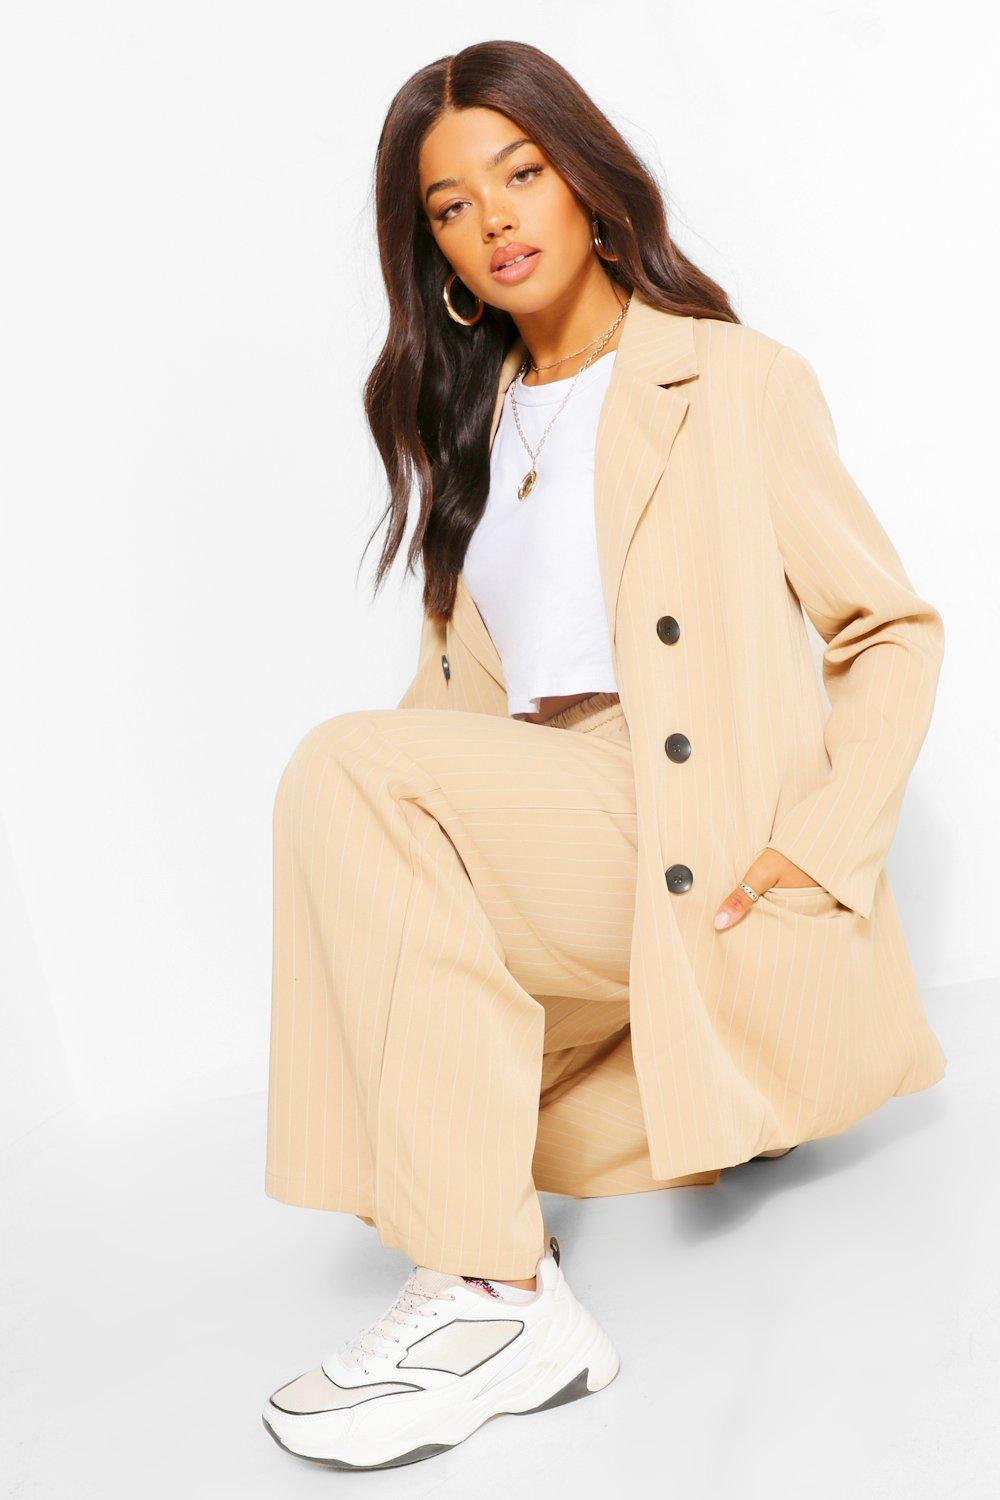 Boohoo: 40% Off Everything Sitewide